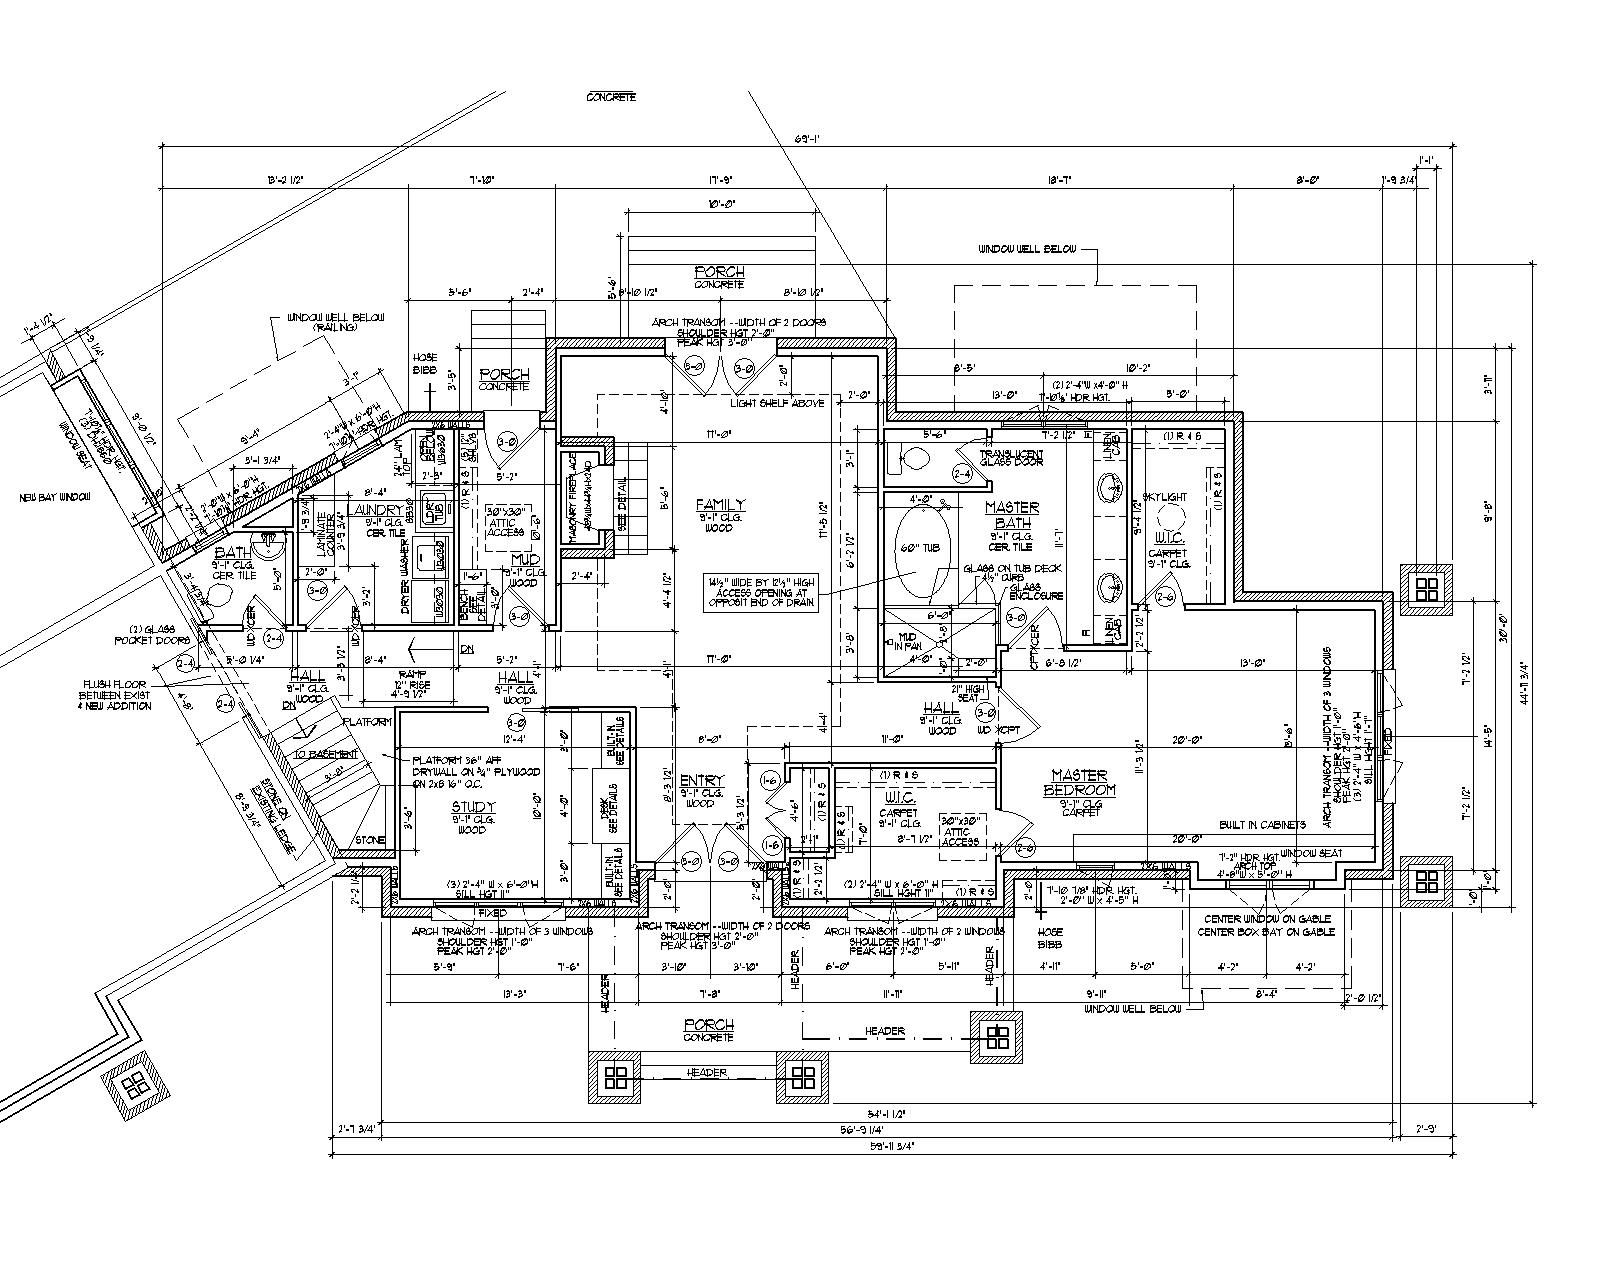 2d autocad house plans residential building drawings cad for House building blueprints